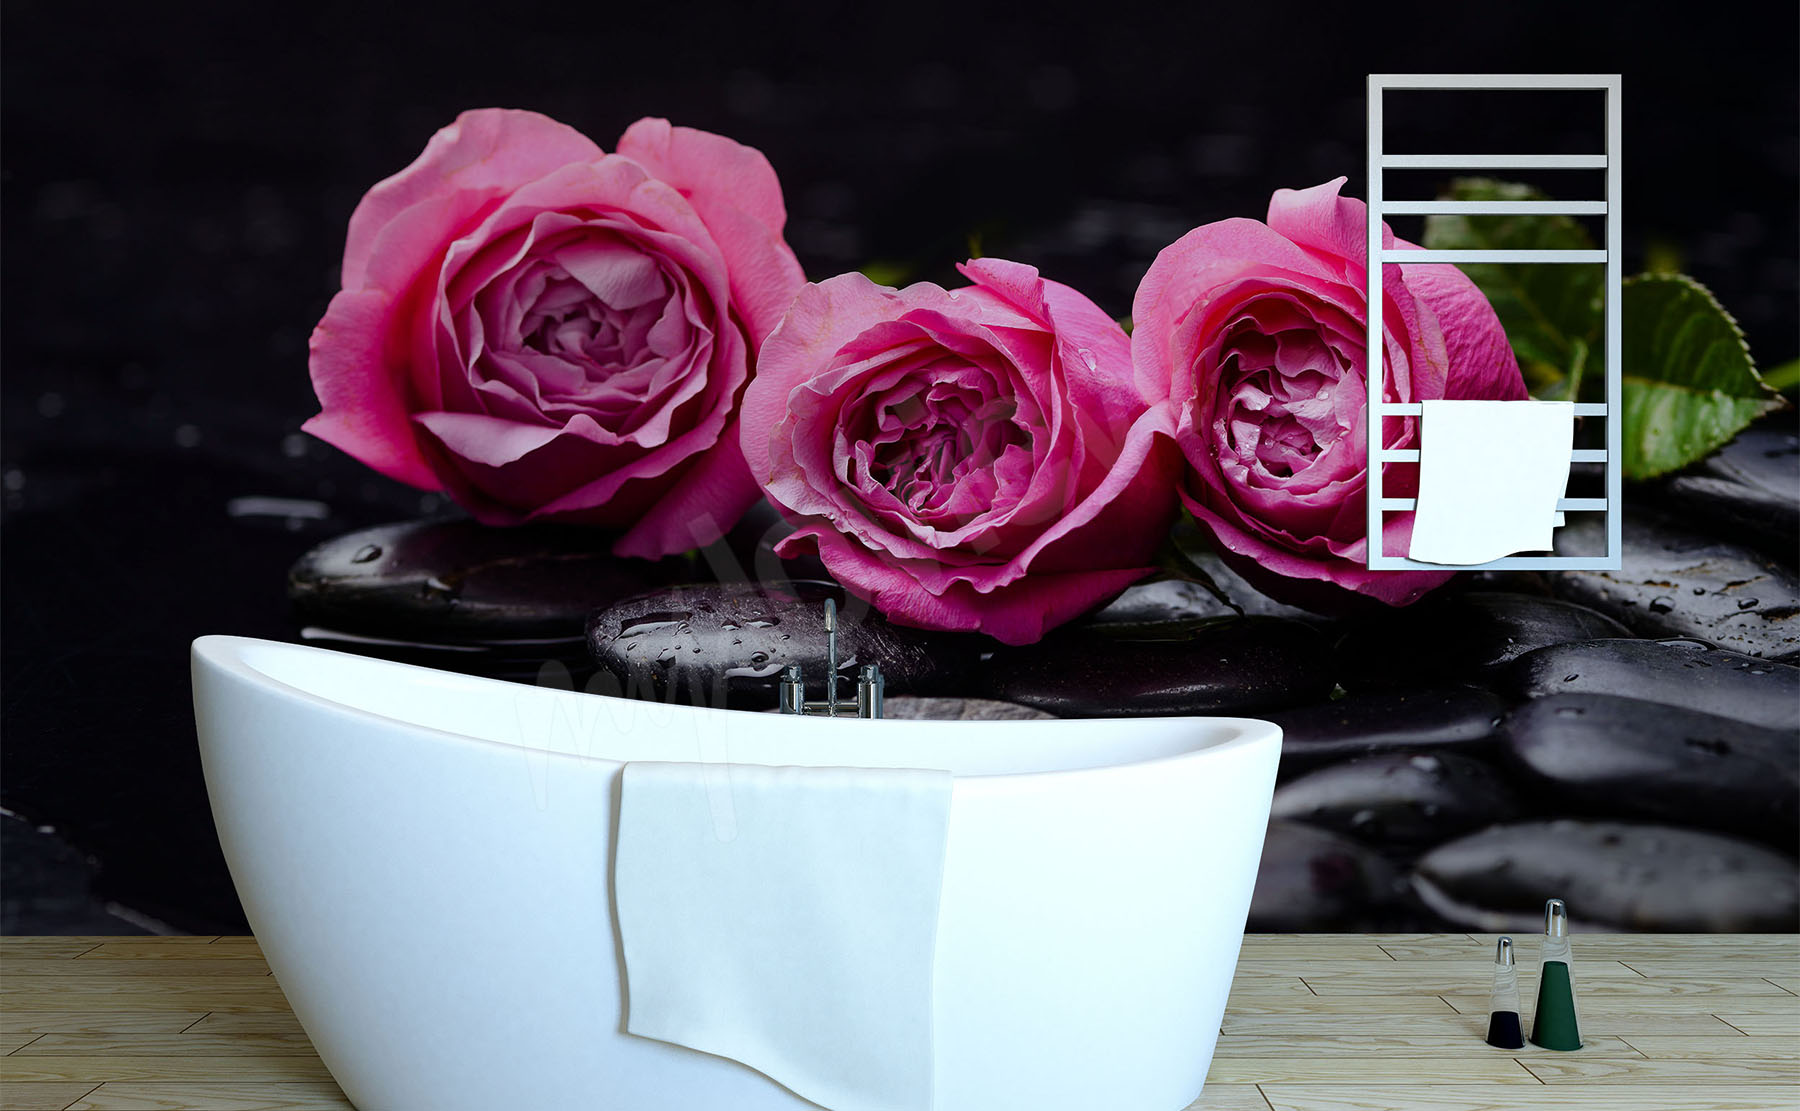 fototapeten rosen gr e der wand. Black Bedroom Furniture Sets. Home Design Ideas